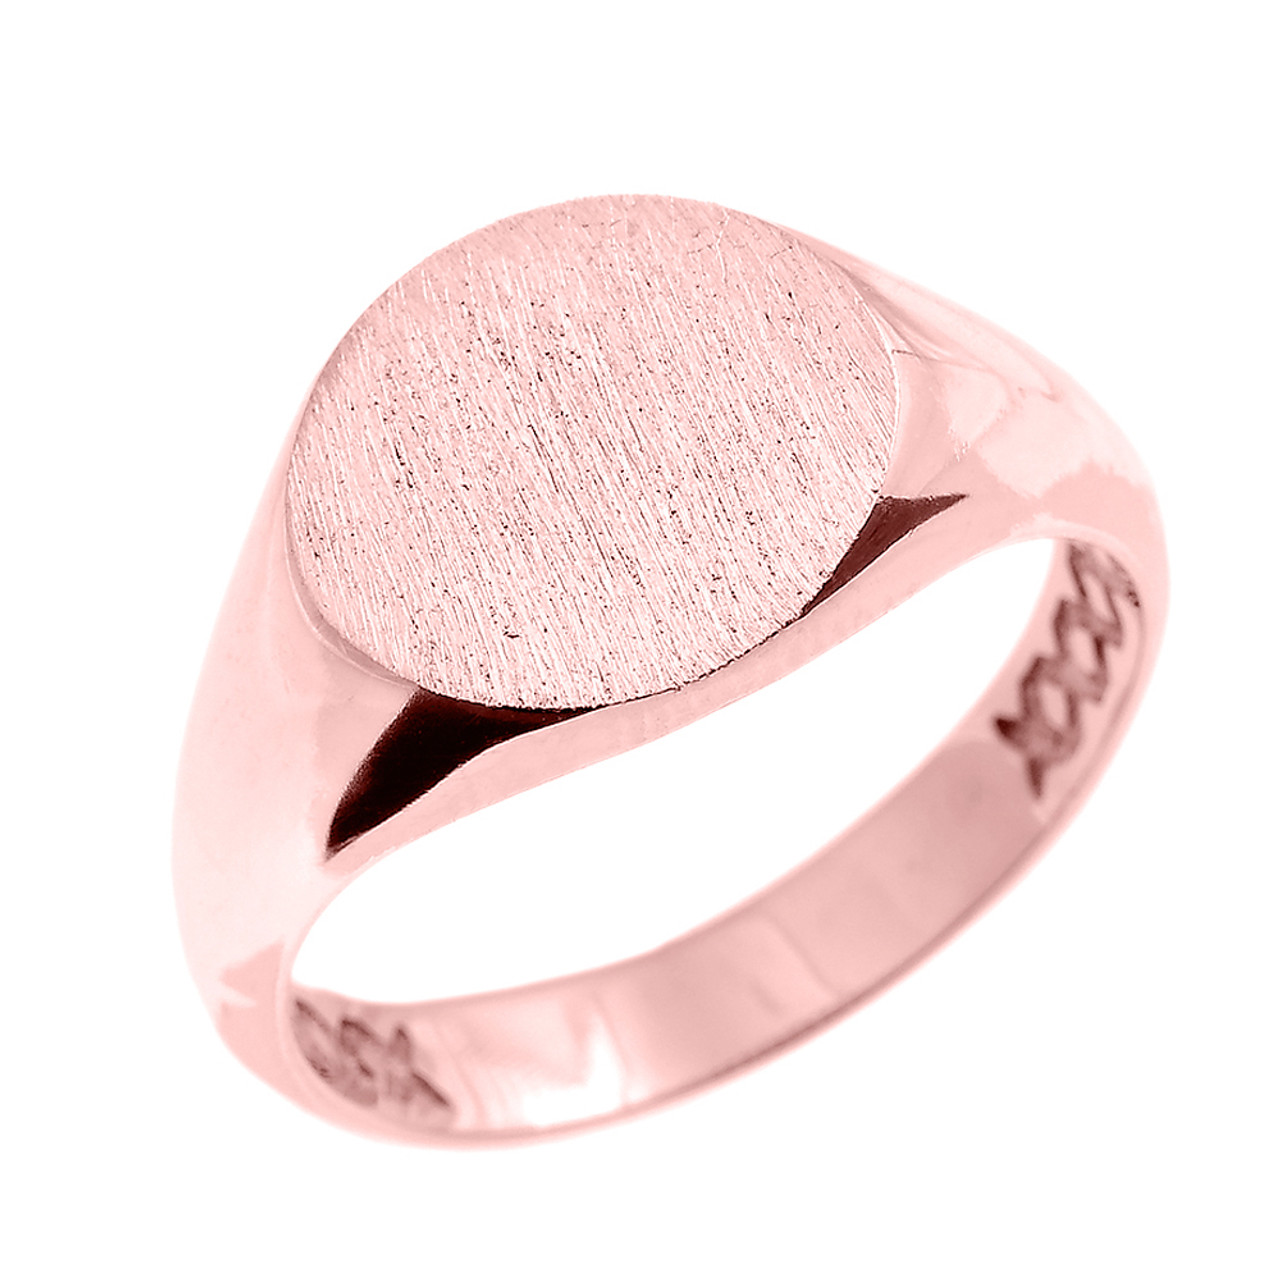 Solid Rose Gold 12 MM Round Engravable Men\'s Signet Ring